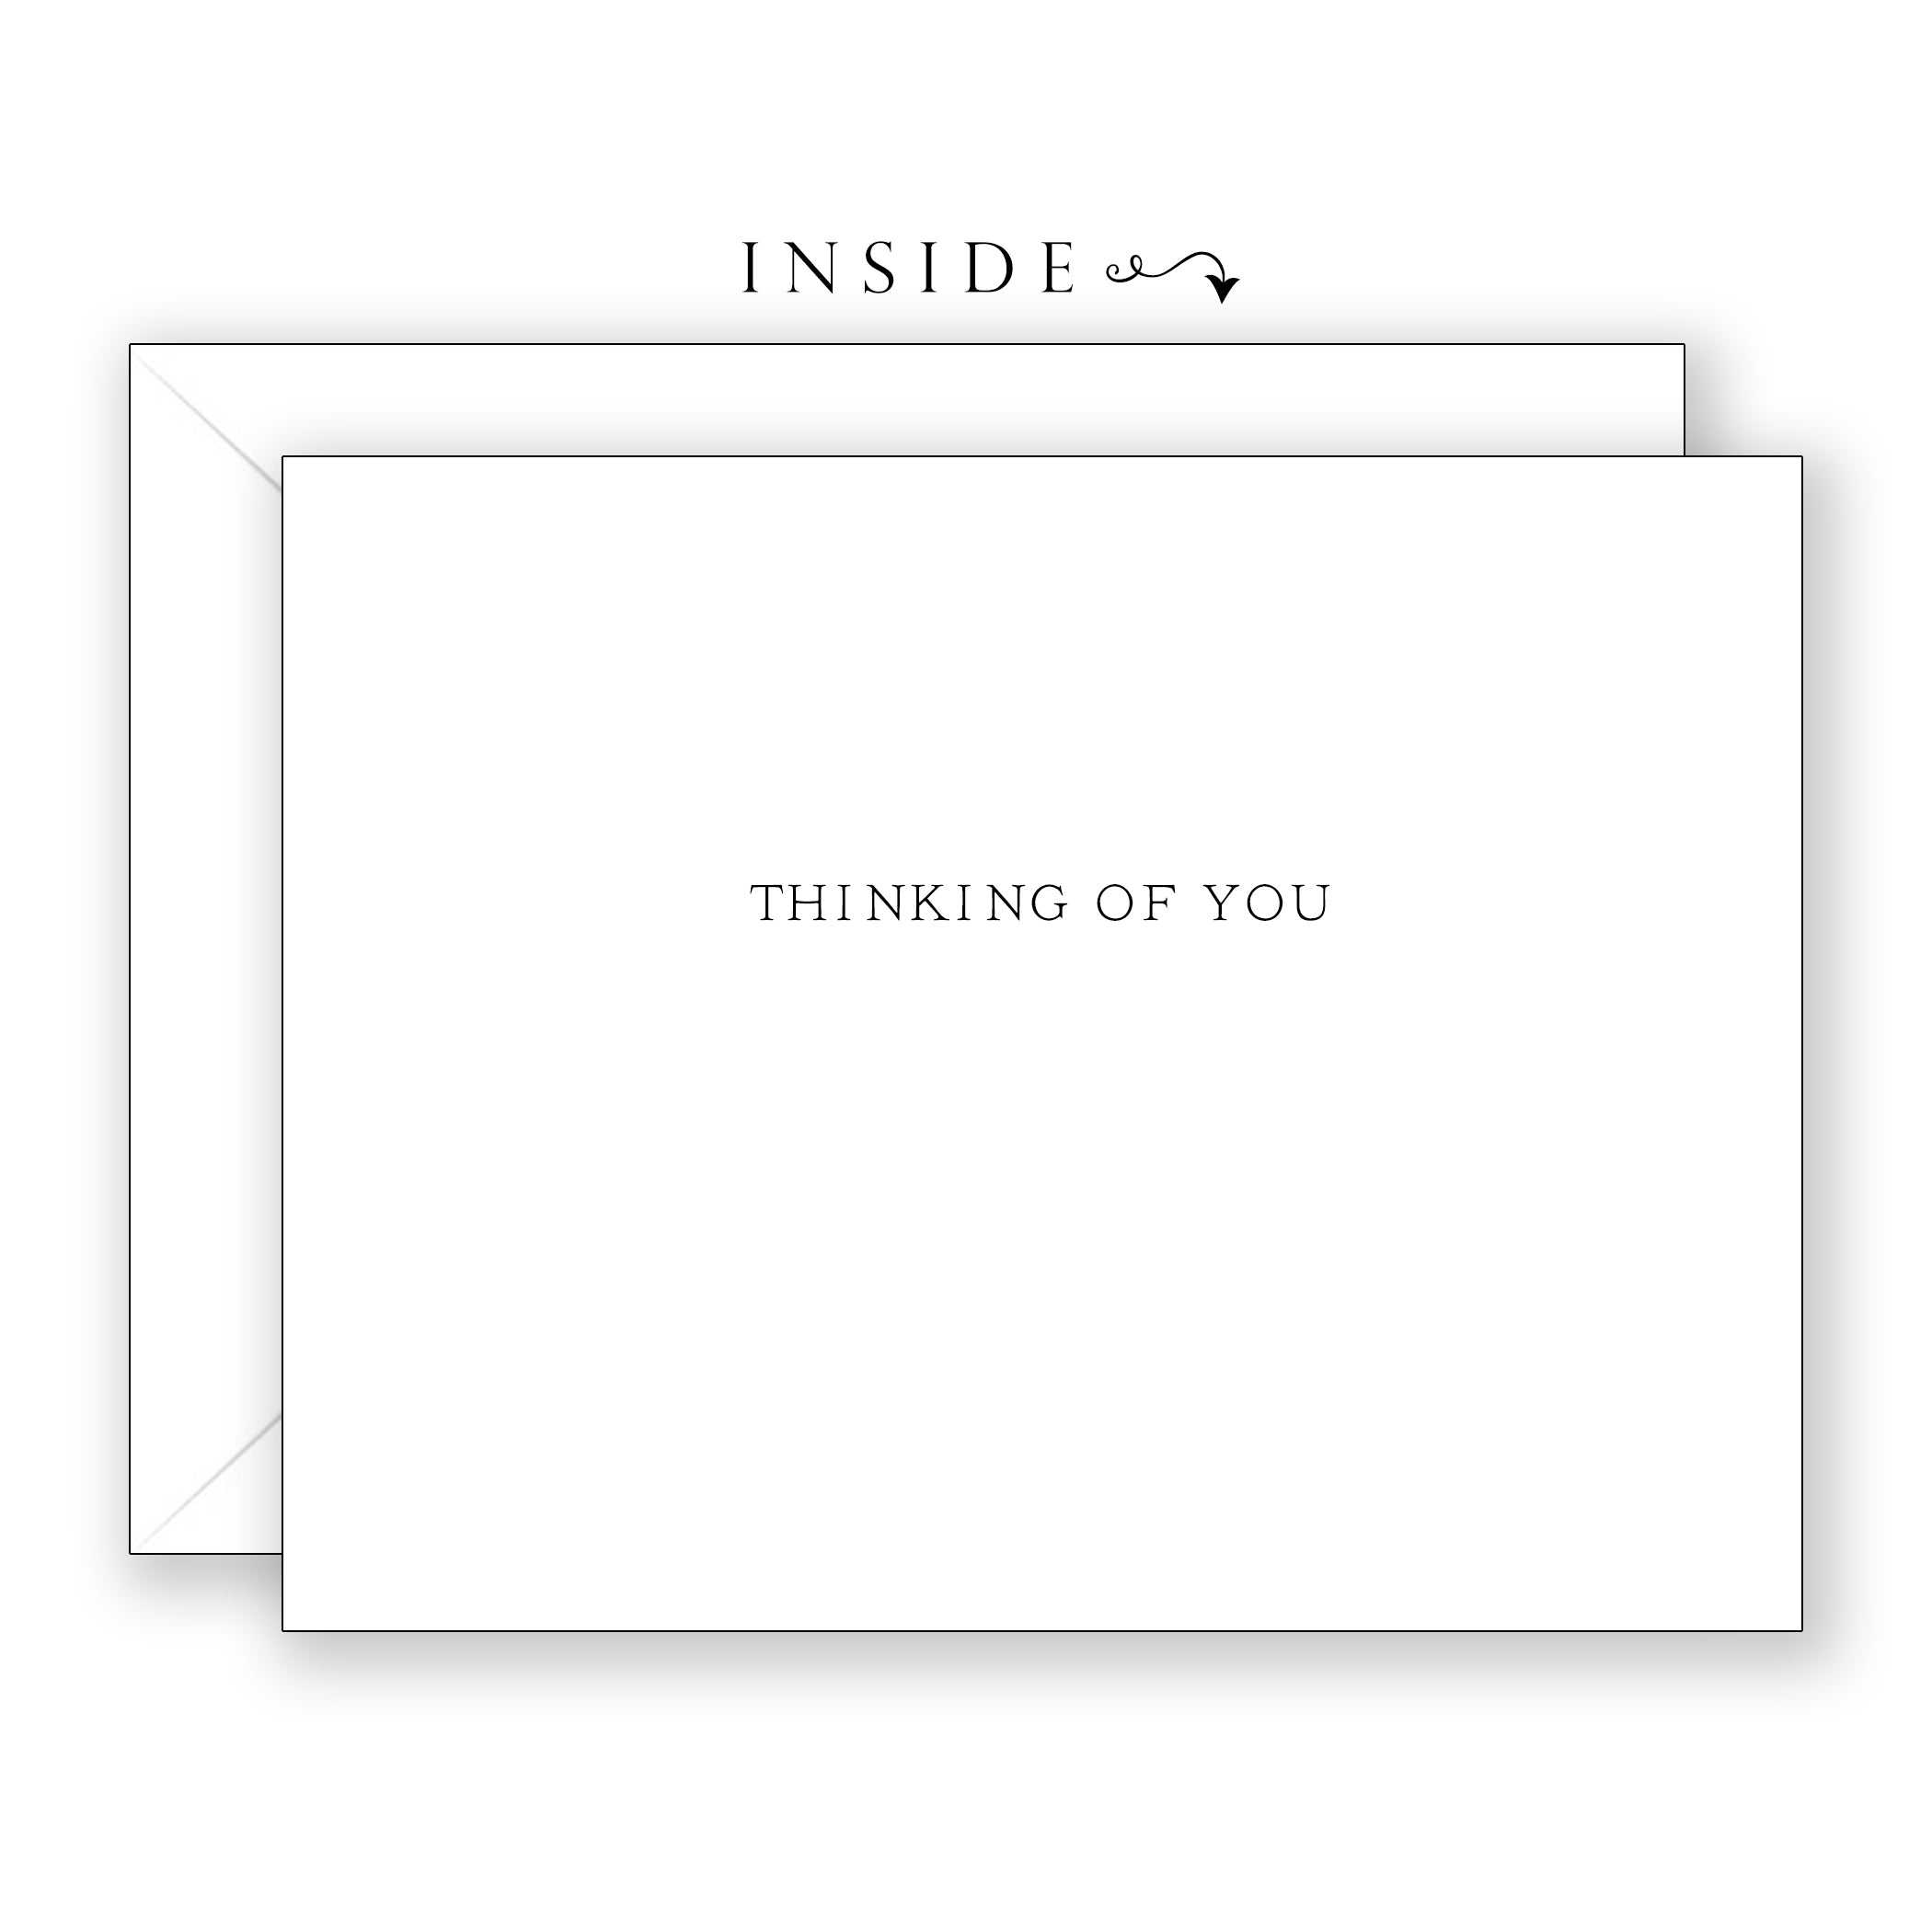 Bradford Pear - Thinking of You Card